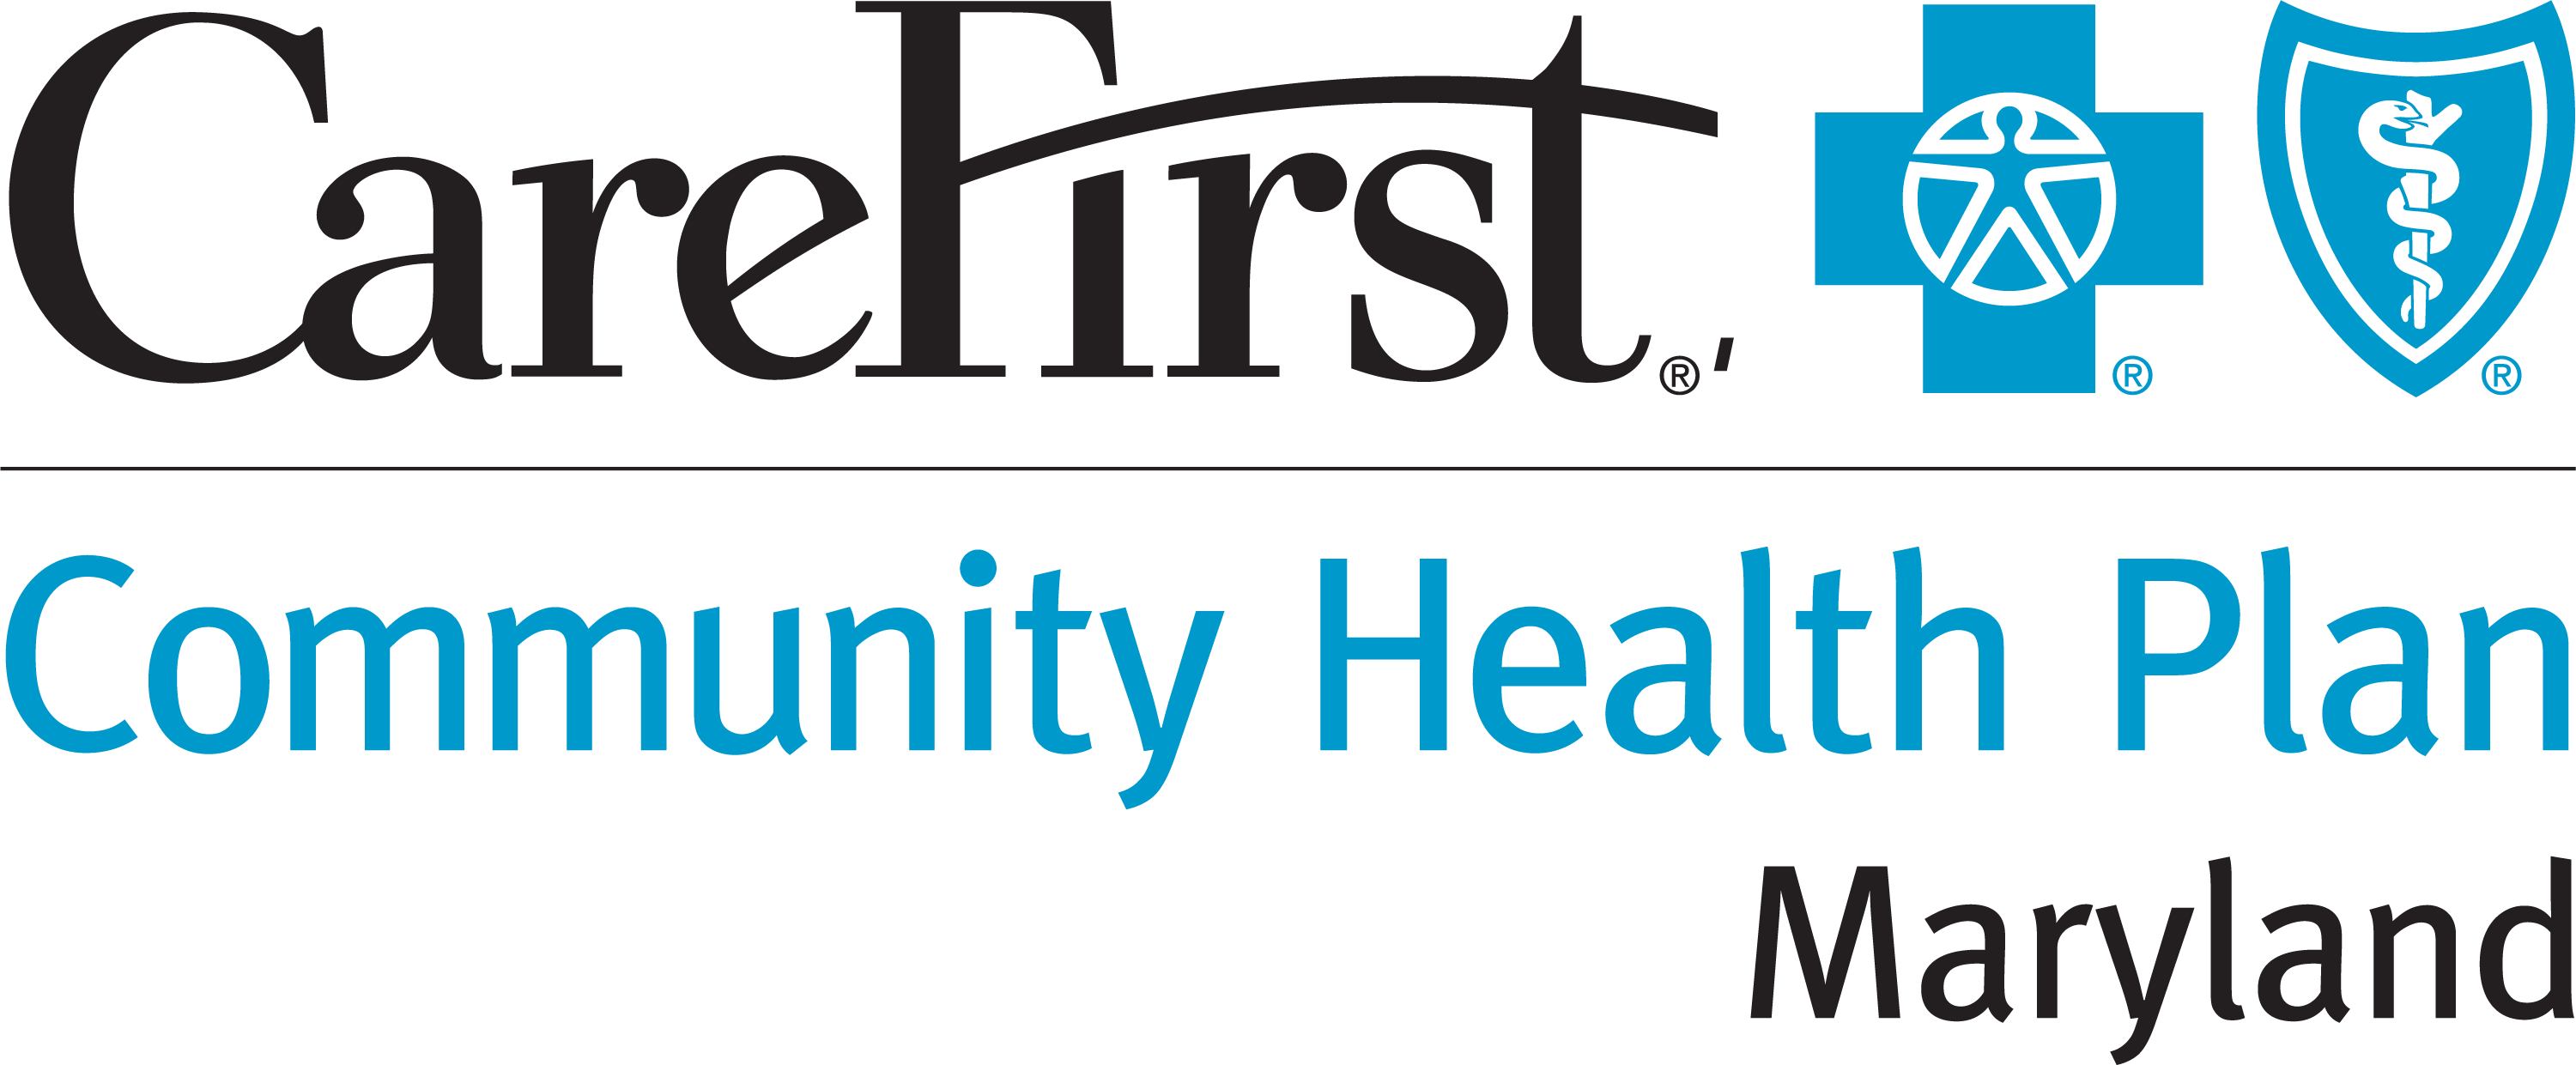 CareFirst Community Health Plan Maryland